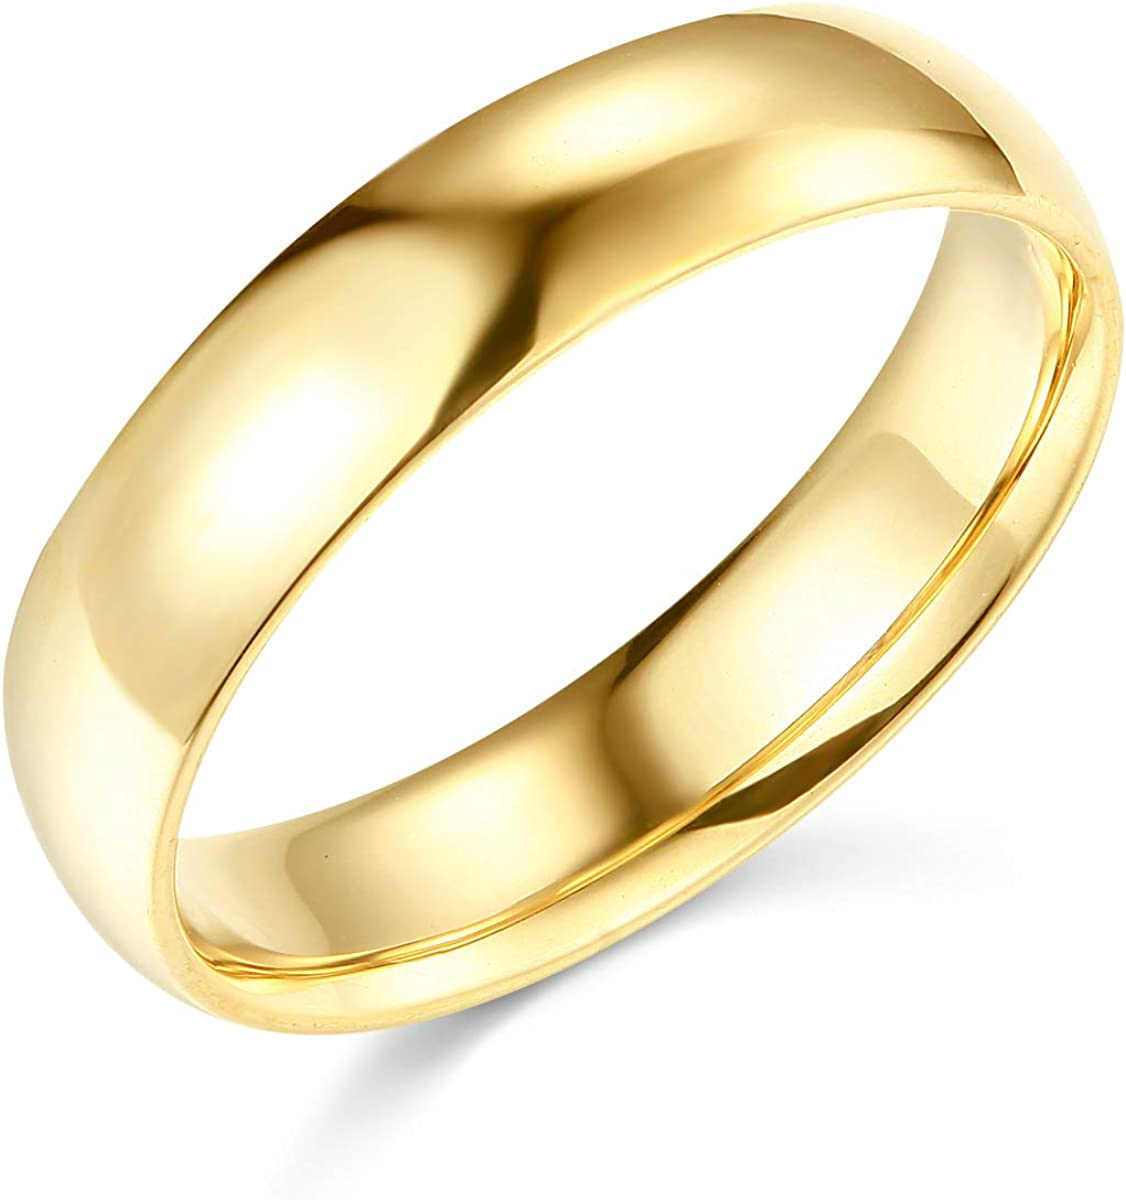 Wellingsale Mens 14k Yellow -OR- White Gold Solid 5mm COMFORT FIT Traditional Wedding Band Ring